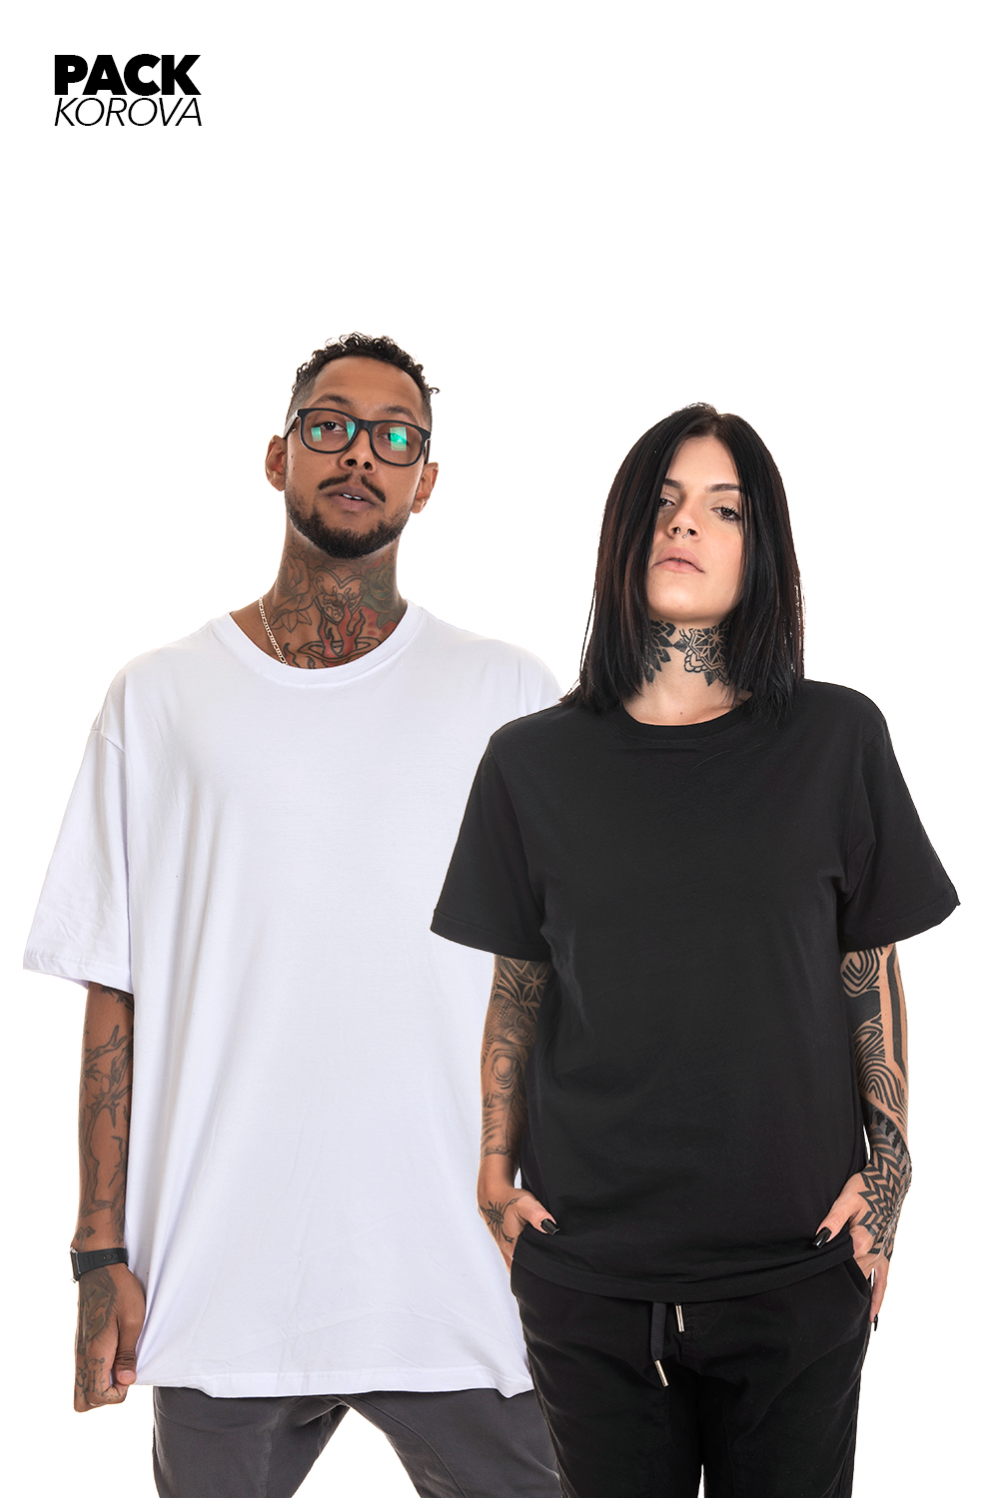 Pack de 2 Camisetas (regulares) Korova Básica